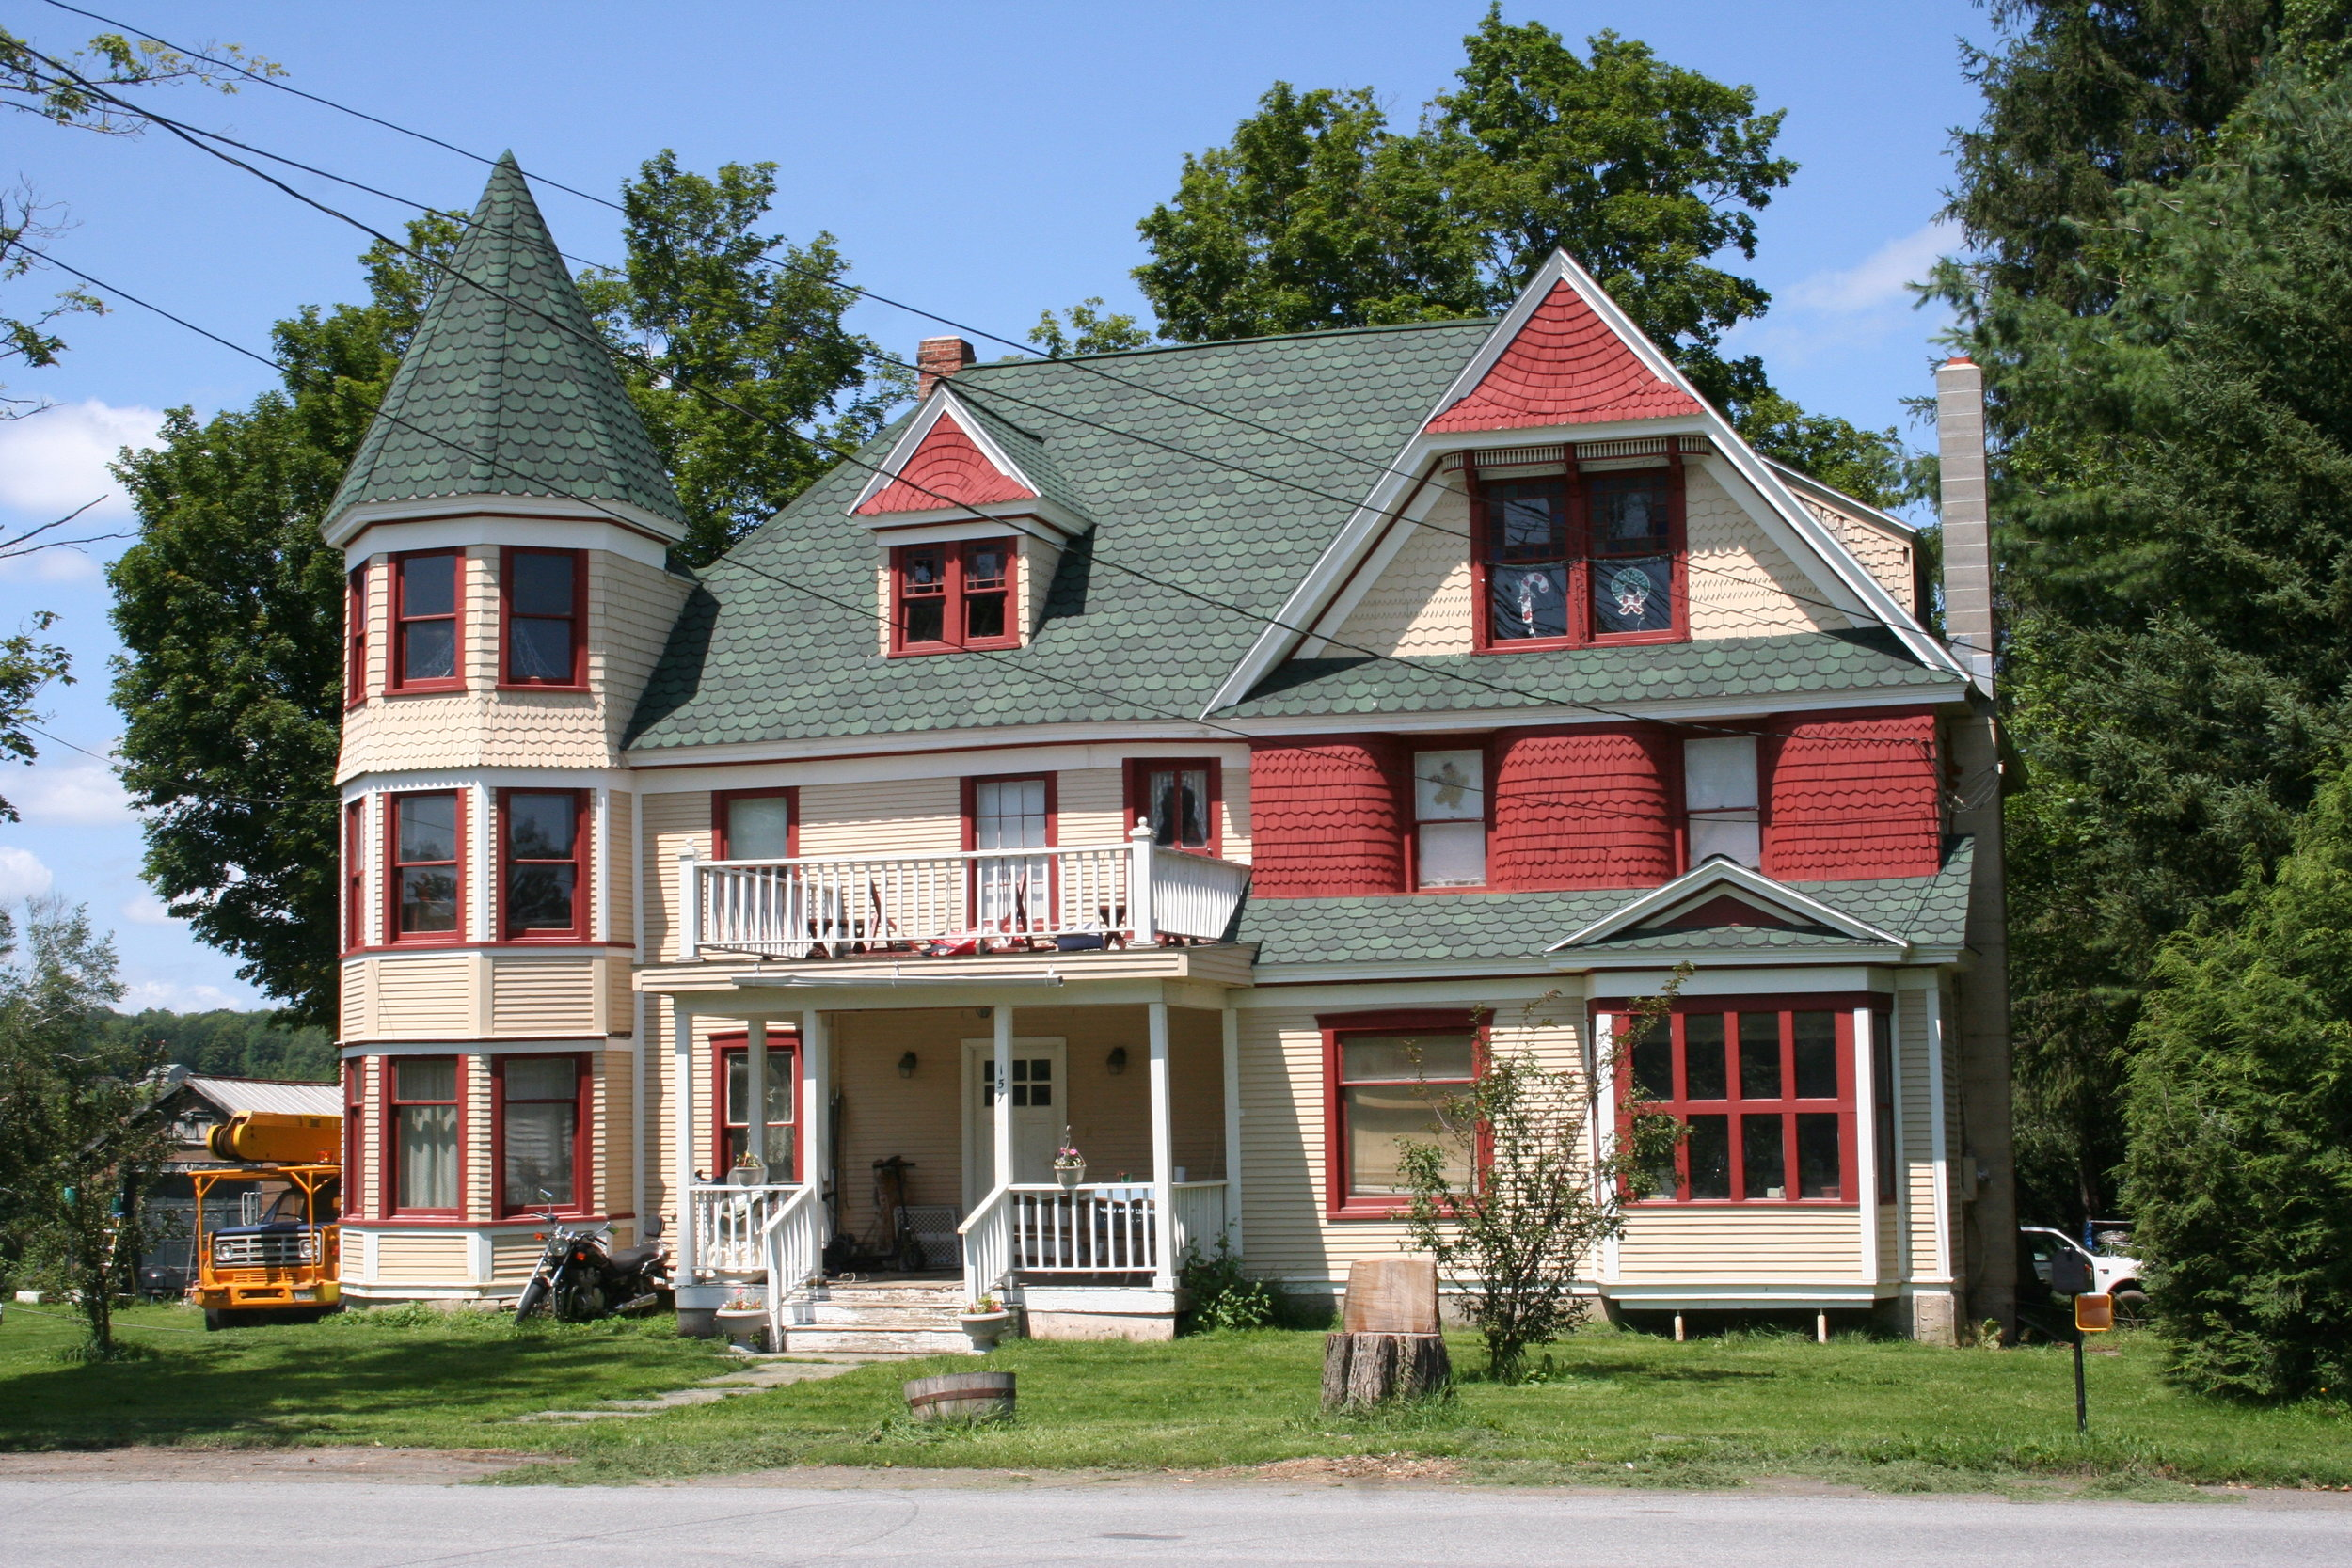 Hamlet of Jefferson (Dr. Richtmyer Hubbell house pictured)